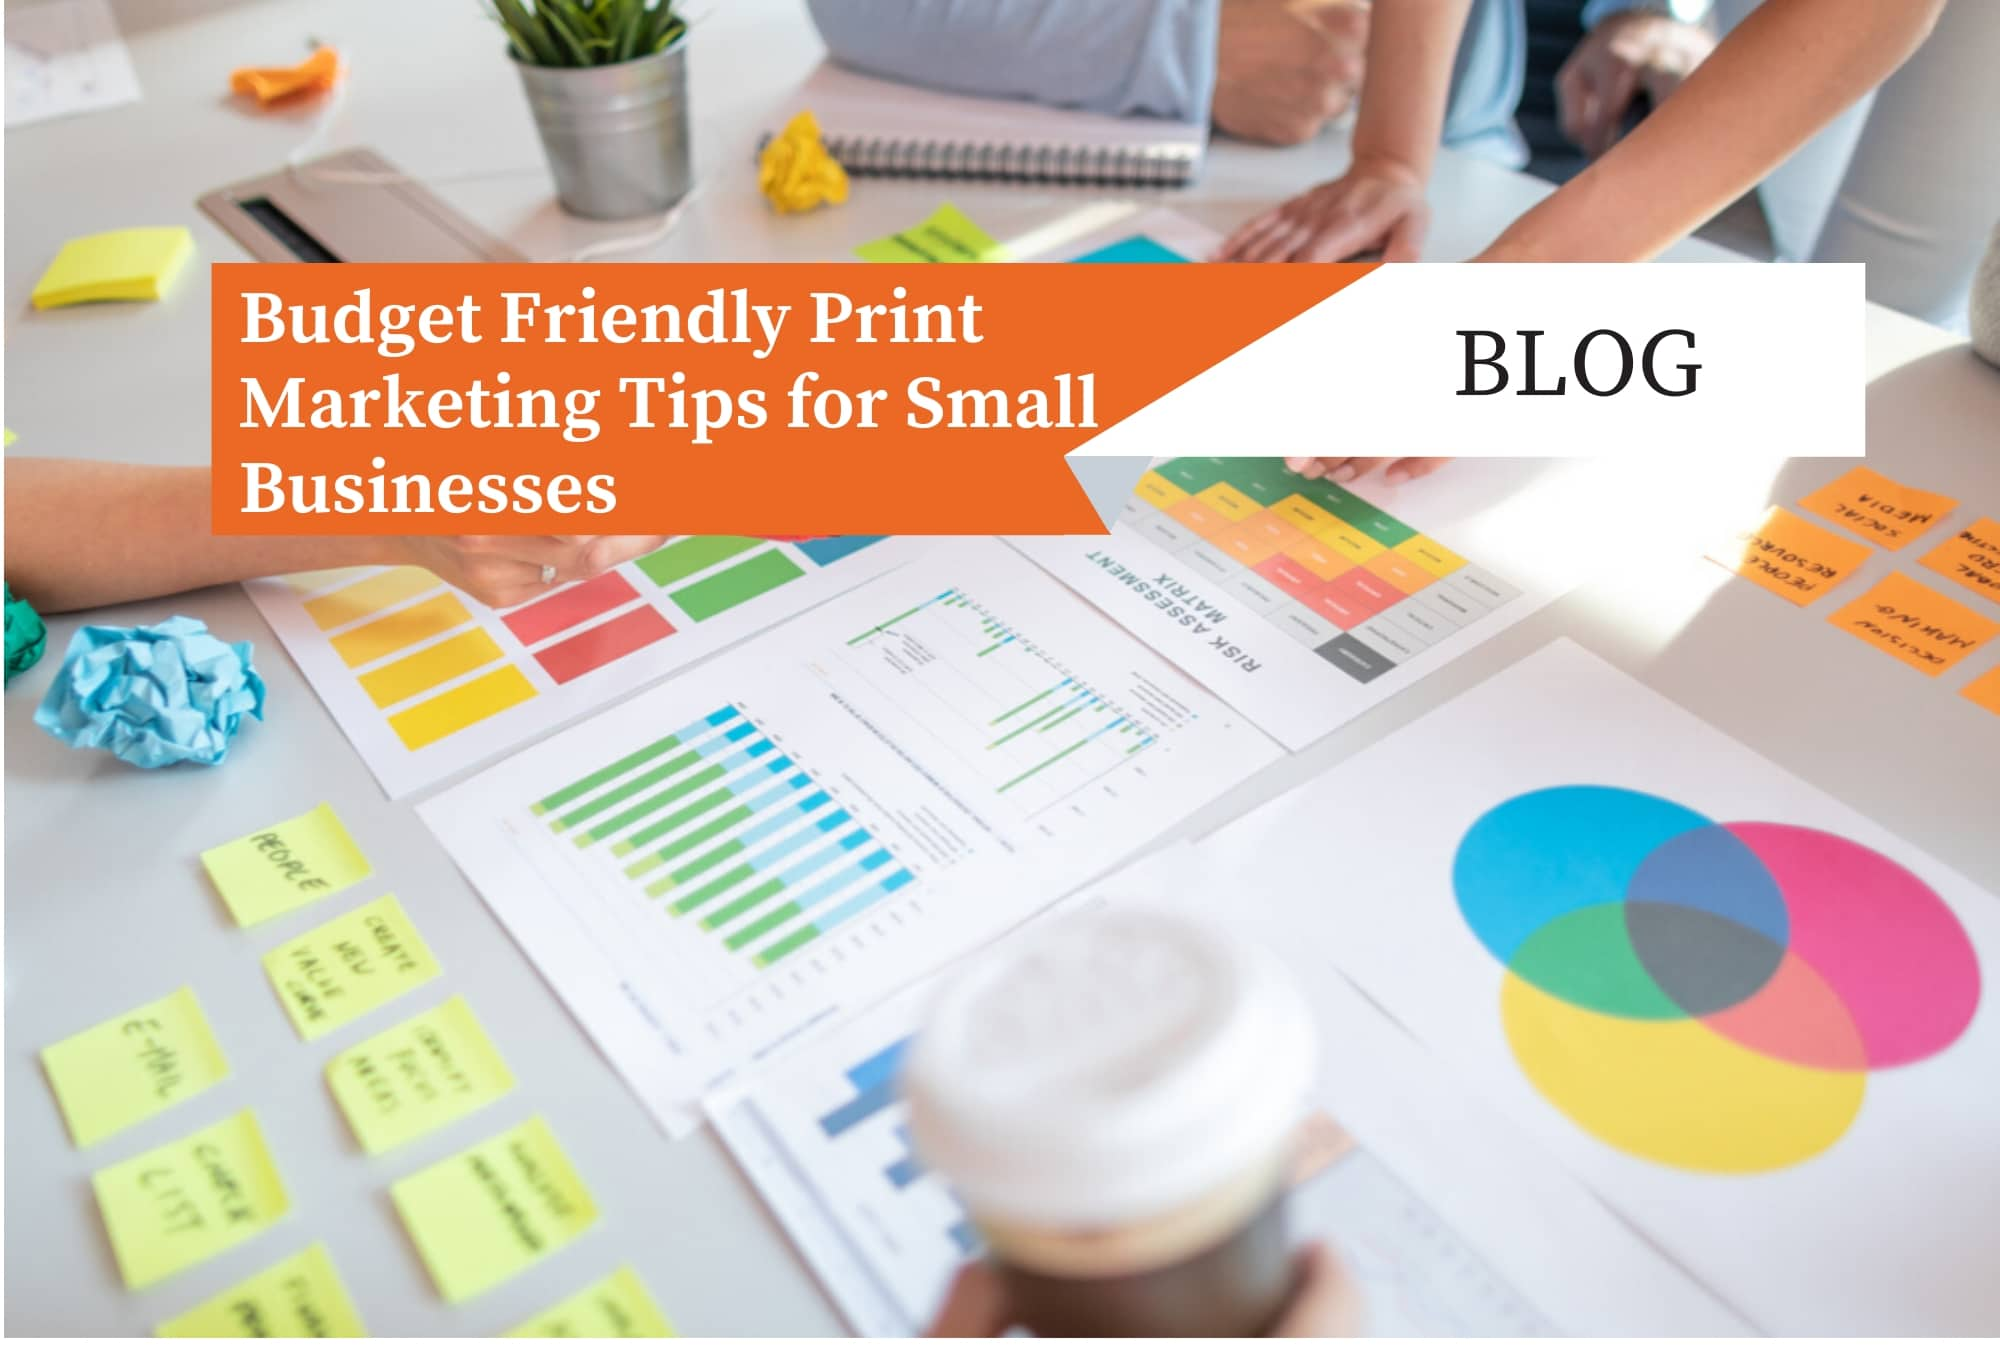 Budget Friendly Print Marketing Tips for Small Businesses